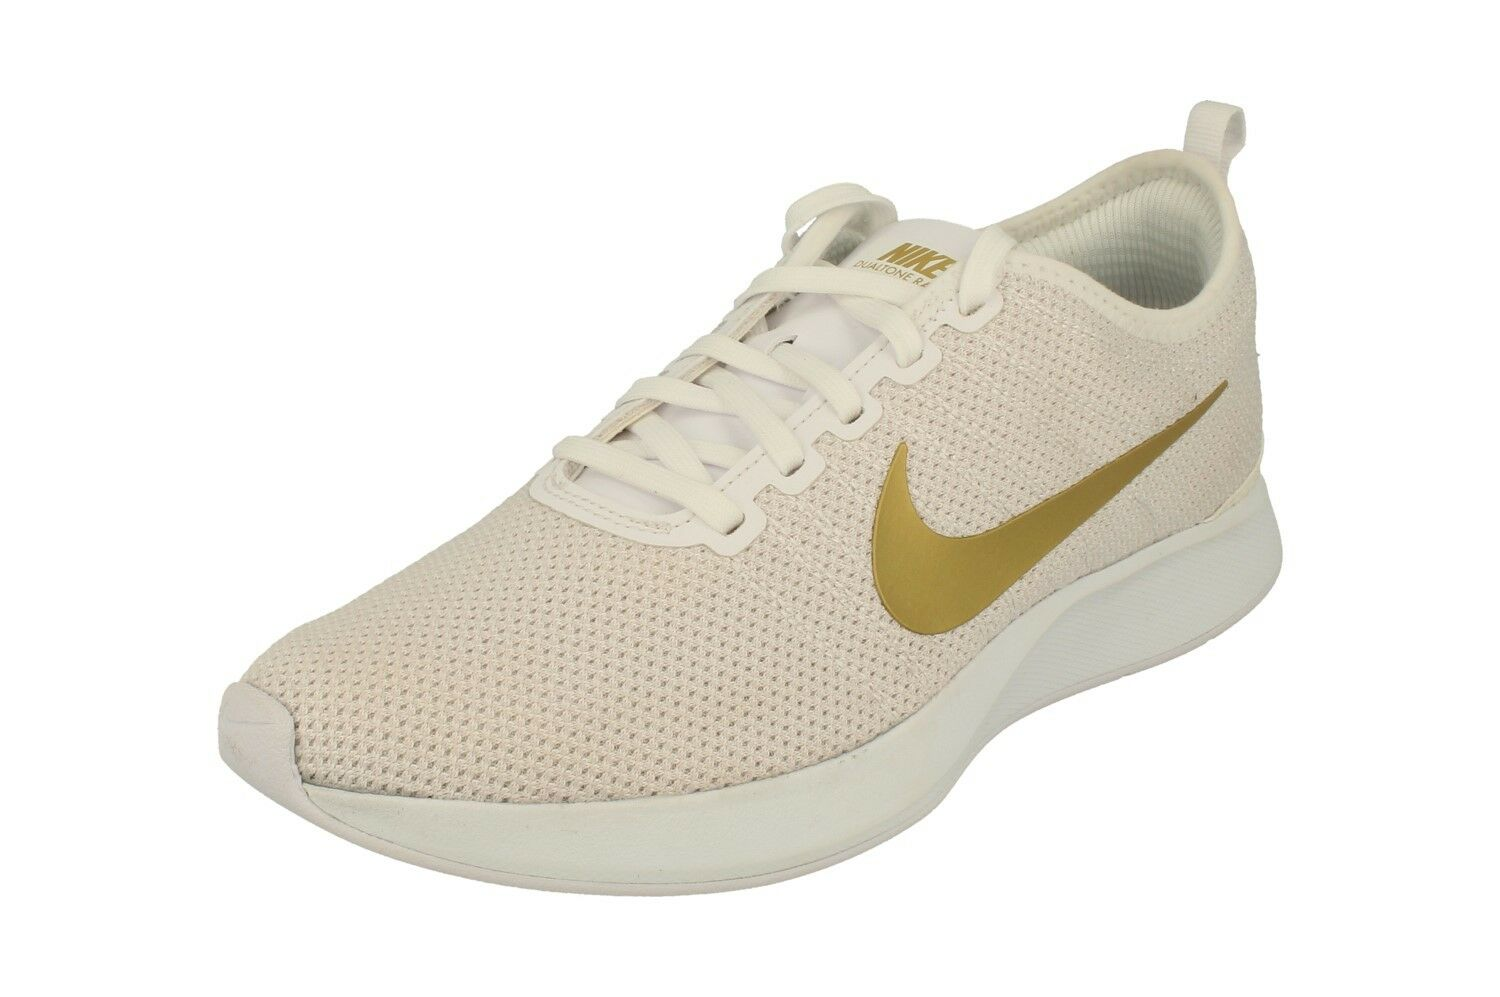 Nike Womens Dualtone Racer Shoes Se Running Trainers 940418 Sneakers Shoes Racer 101 071a04